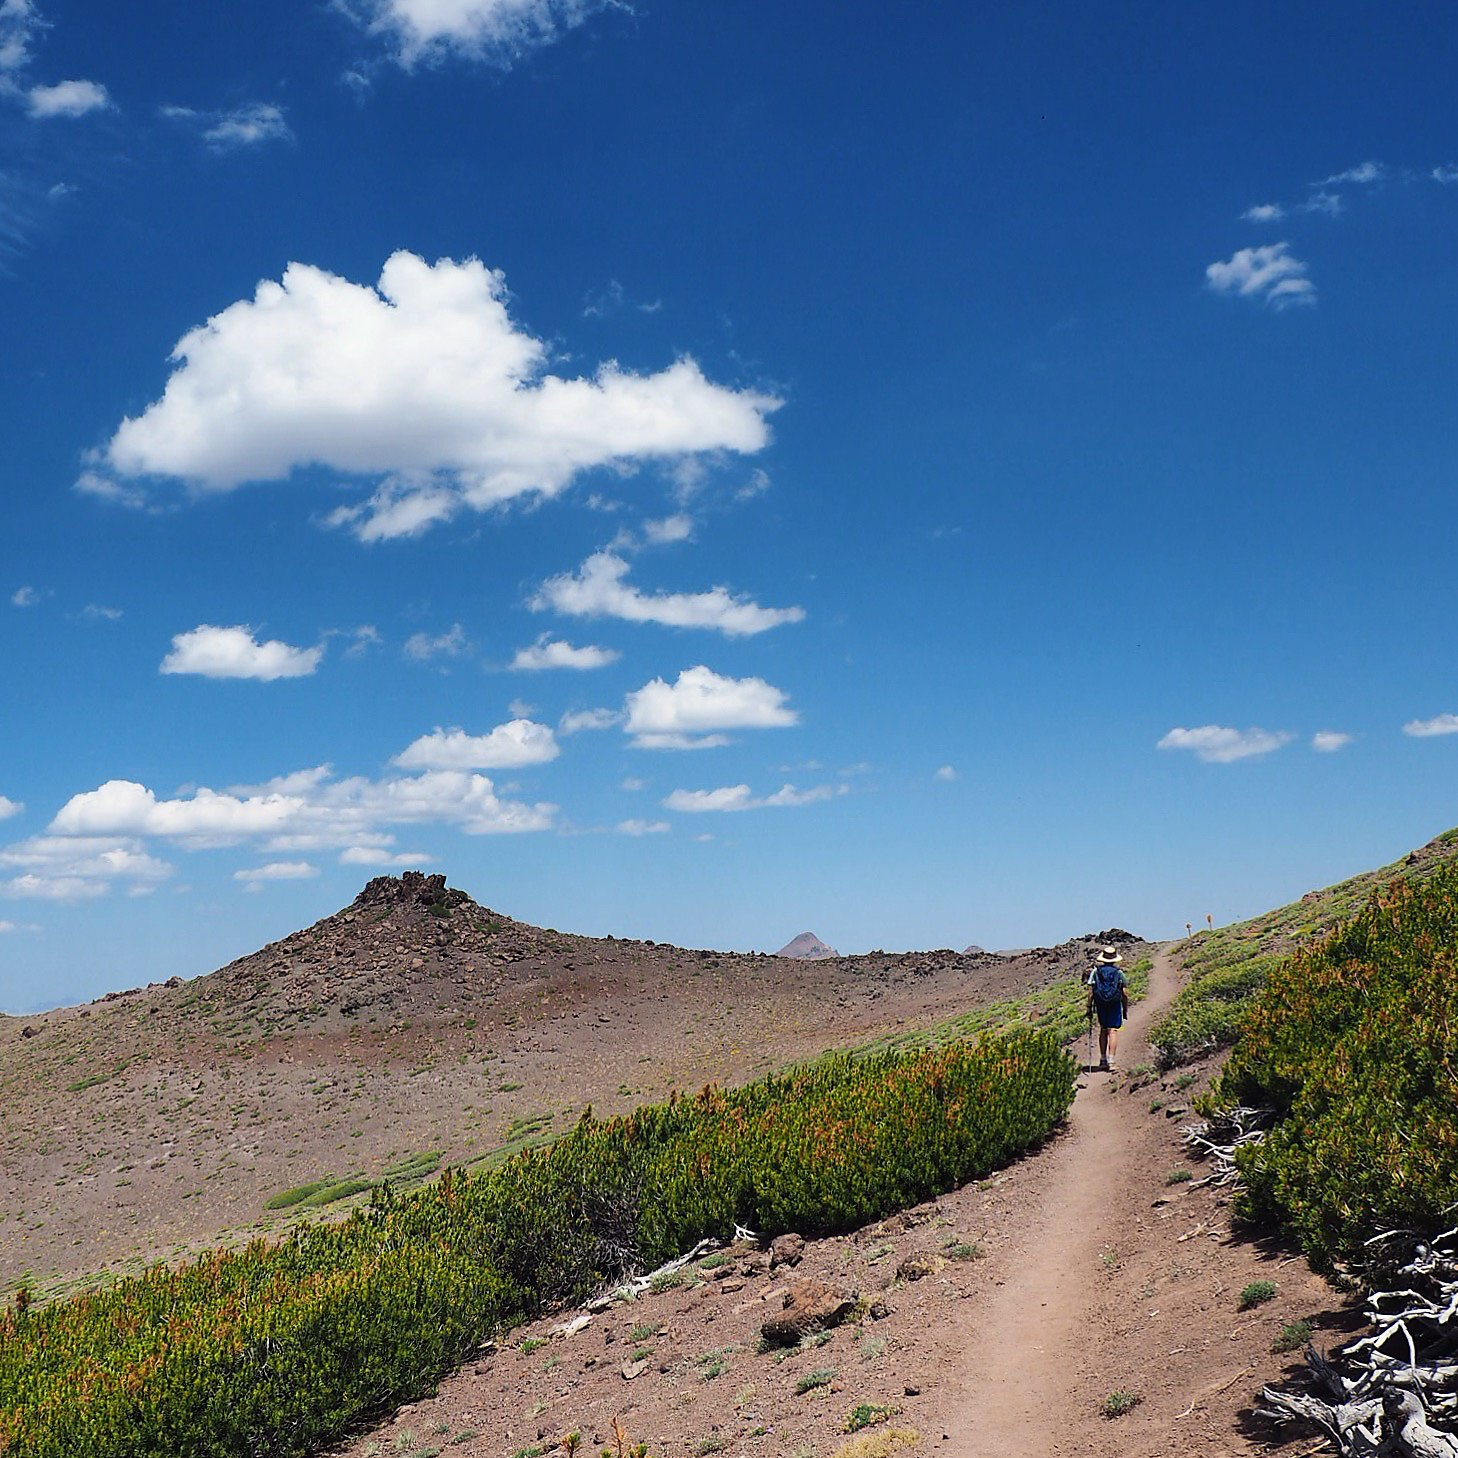 backpack45 on hiking the trail pacific crest trail - HD1458×1458